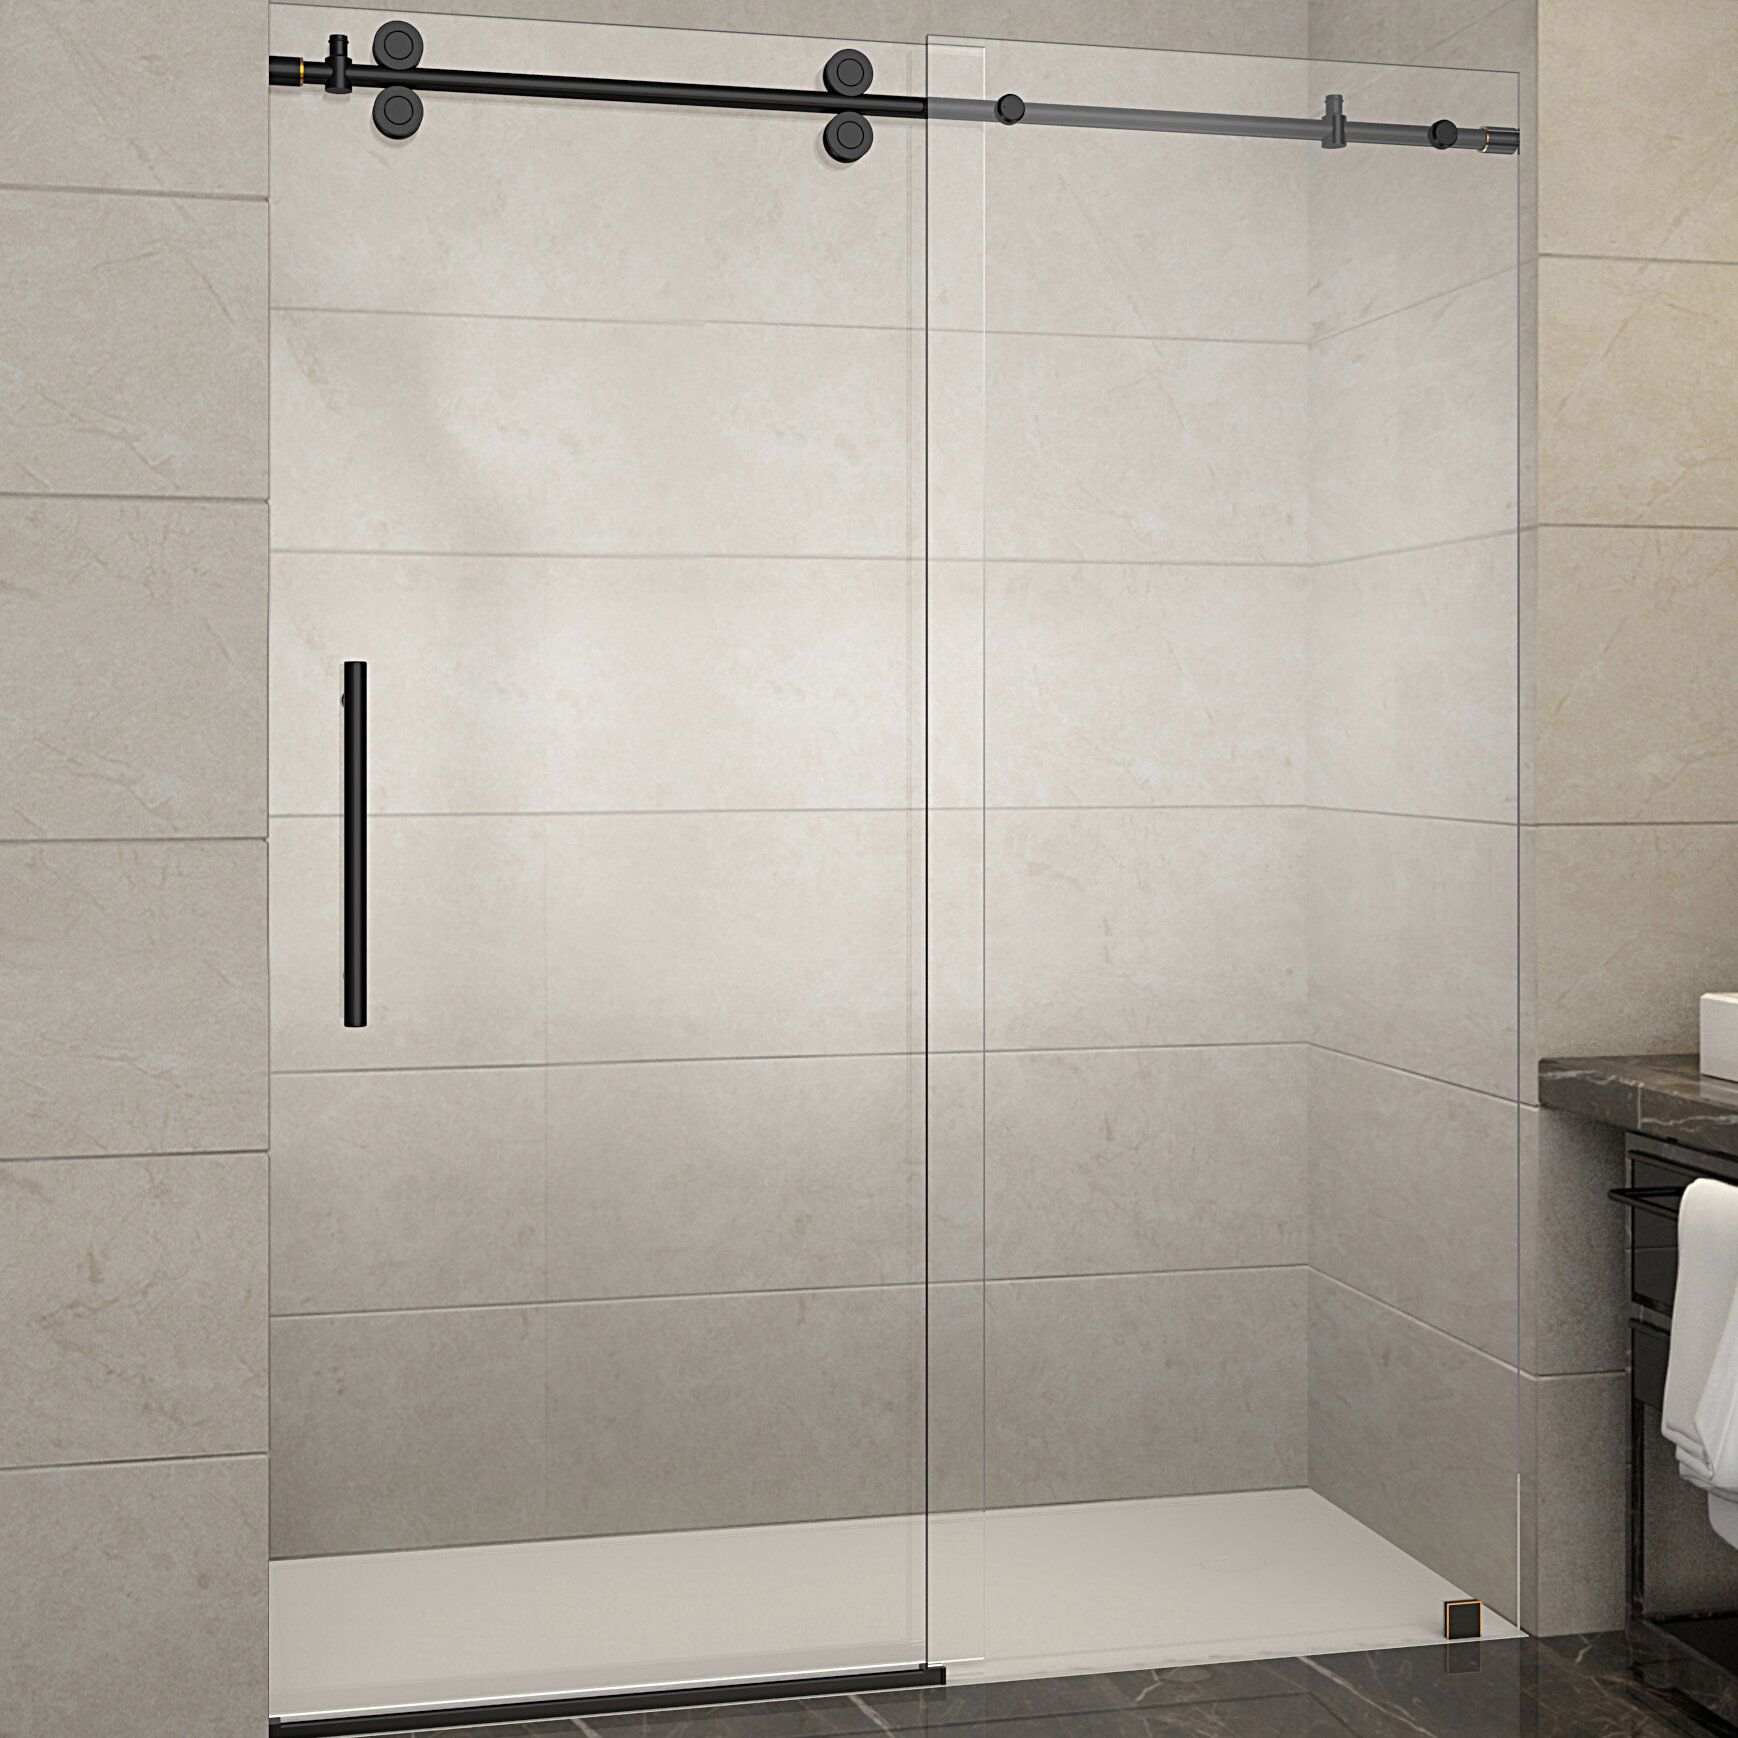 Shower Door Shower Bathtub Doors Youll Love Wayfair